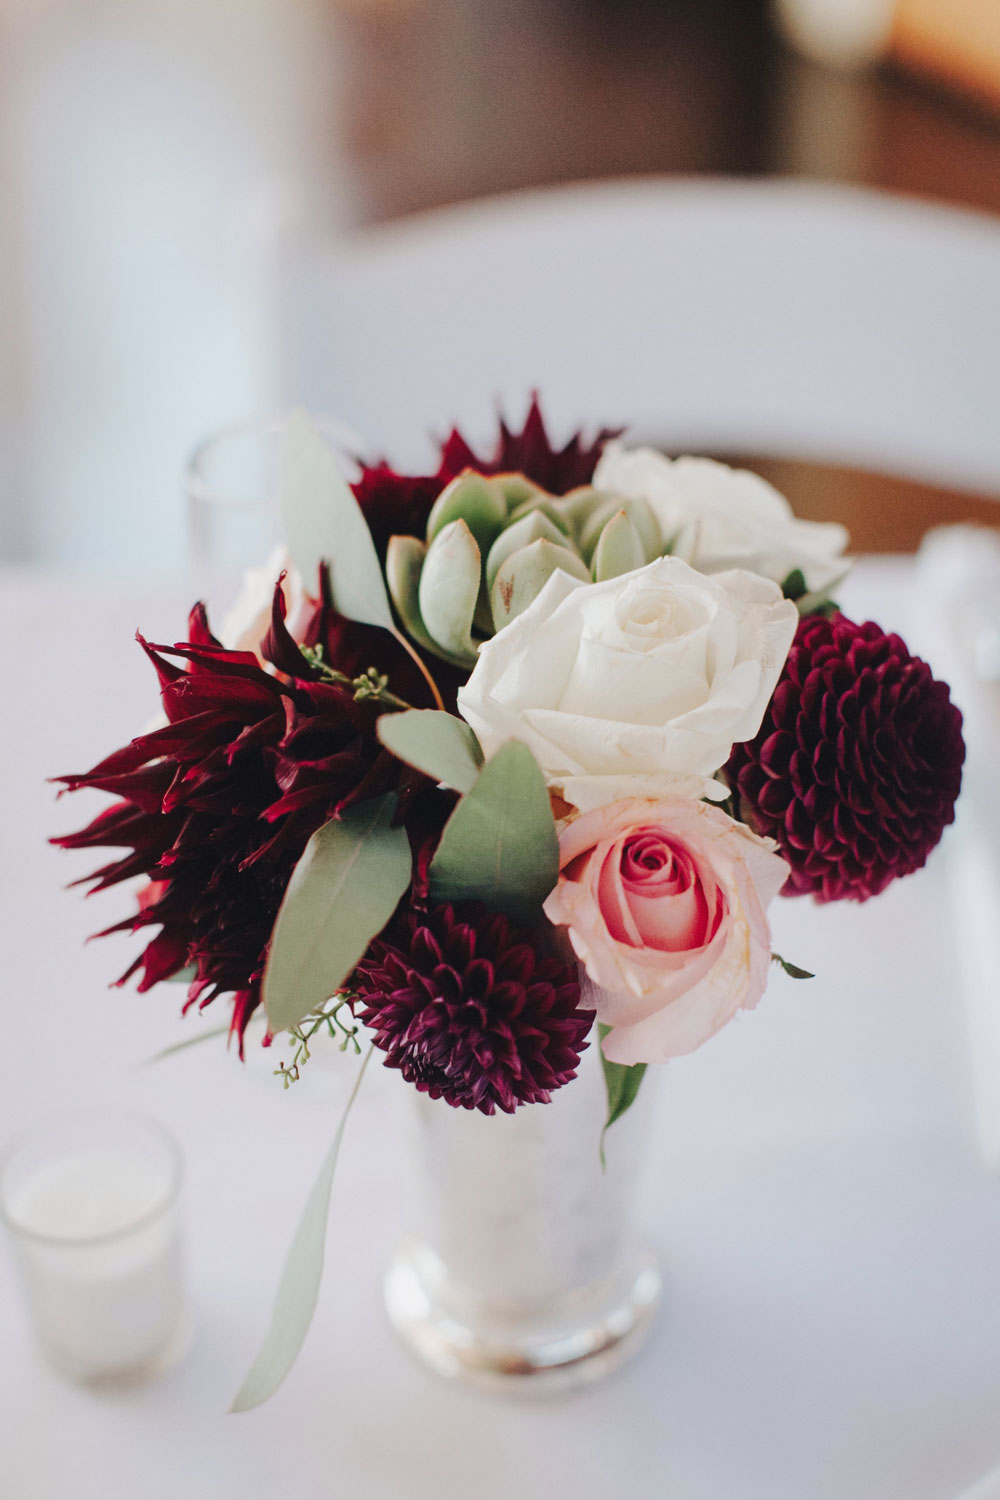 Wedding Table Flowers with White and Pink Roses created by Kate Healey